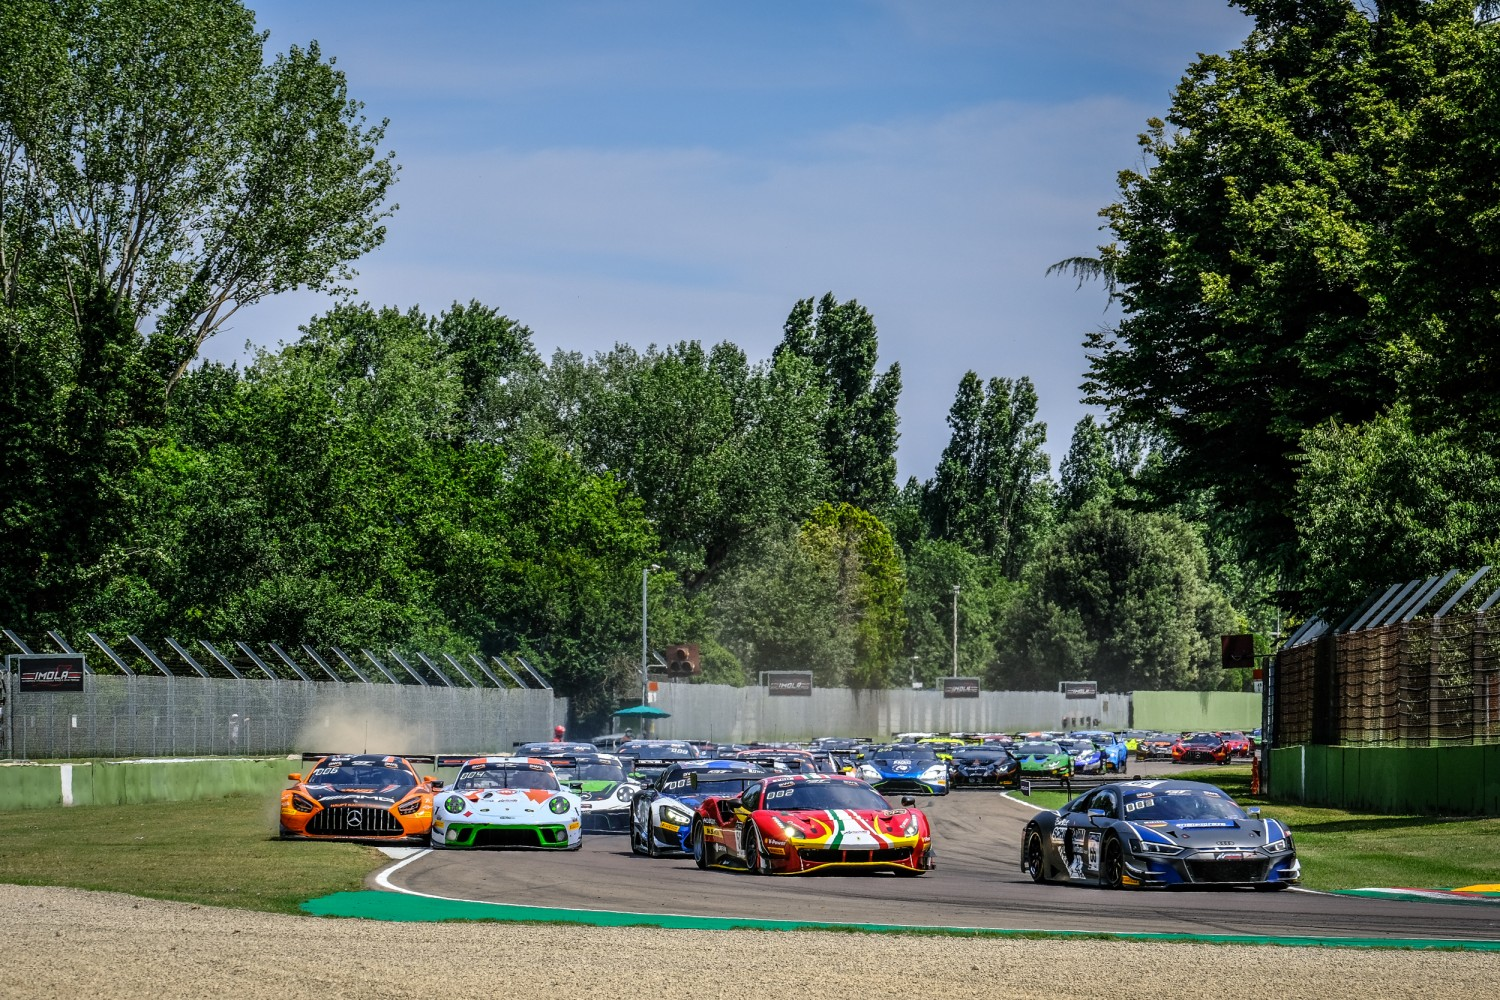 THE WEEKEND ROUNDUP: IMOLA